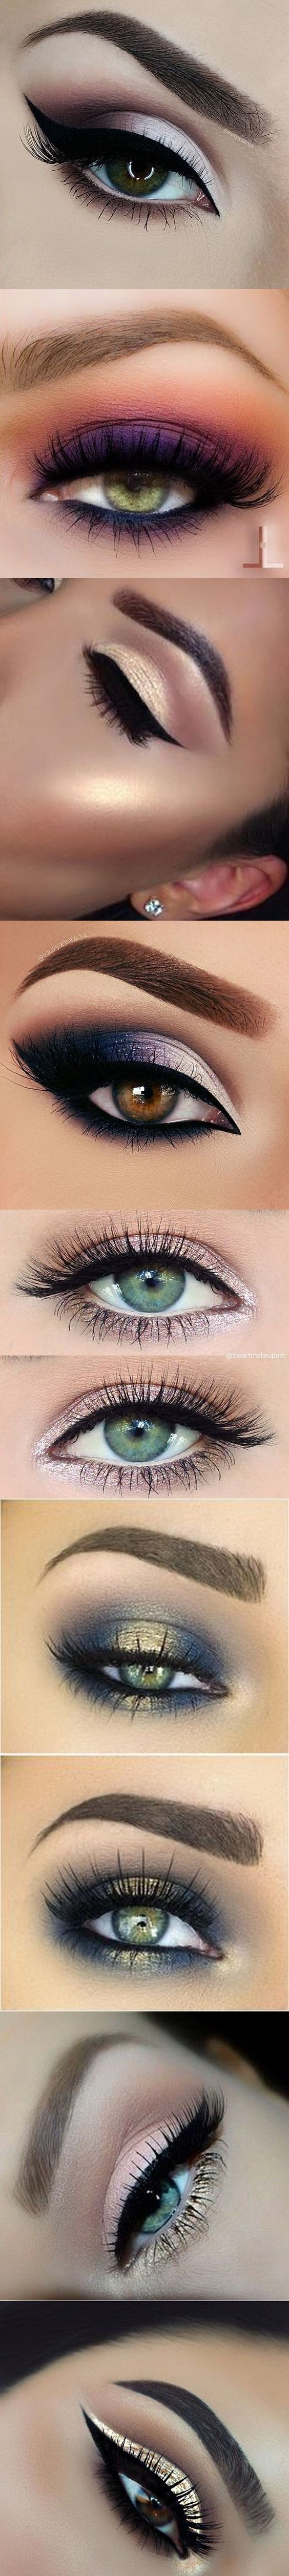 Inspiring eye looks. Which ones will you try?✖️More Pins Like This One At FOSTERGINGER @ Pinterest✖️